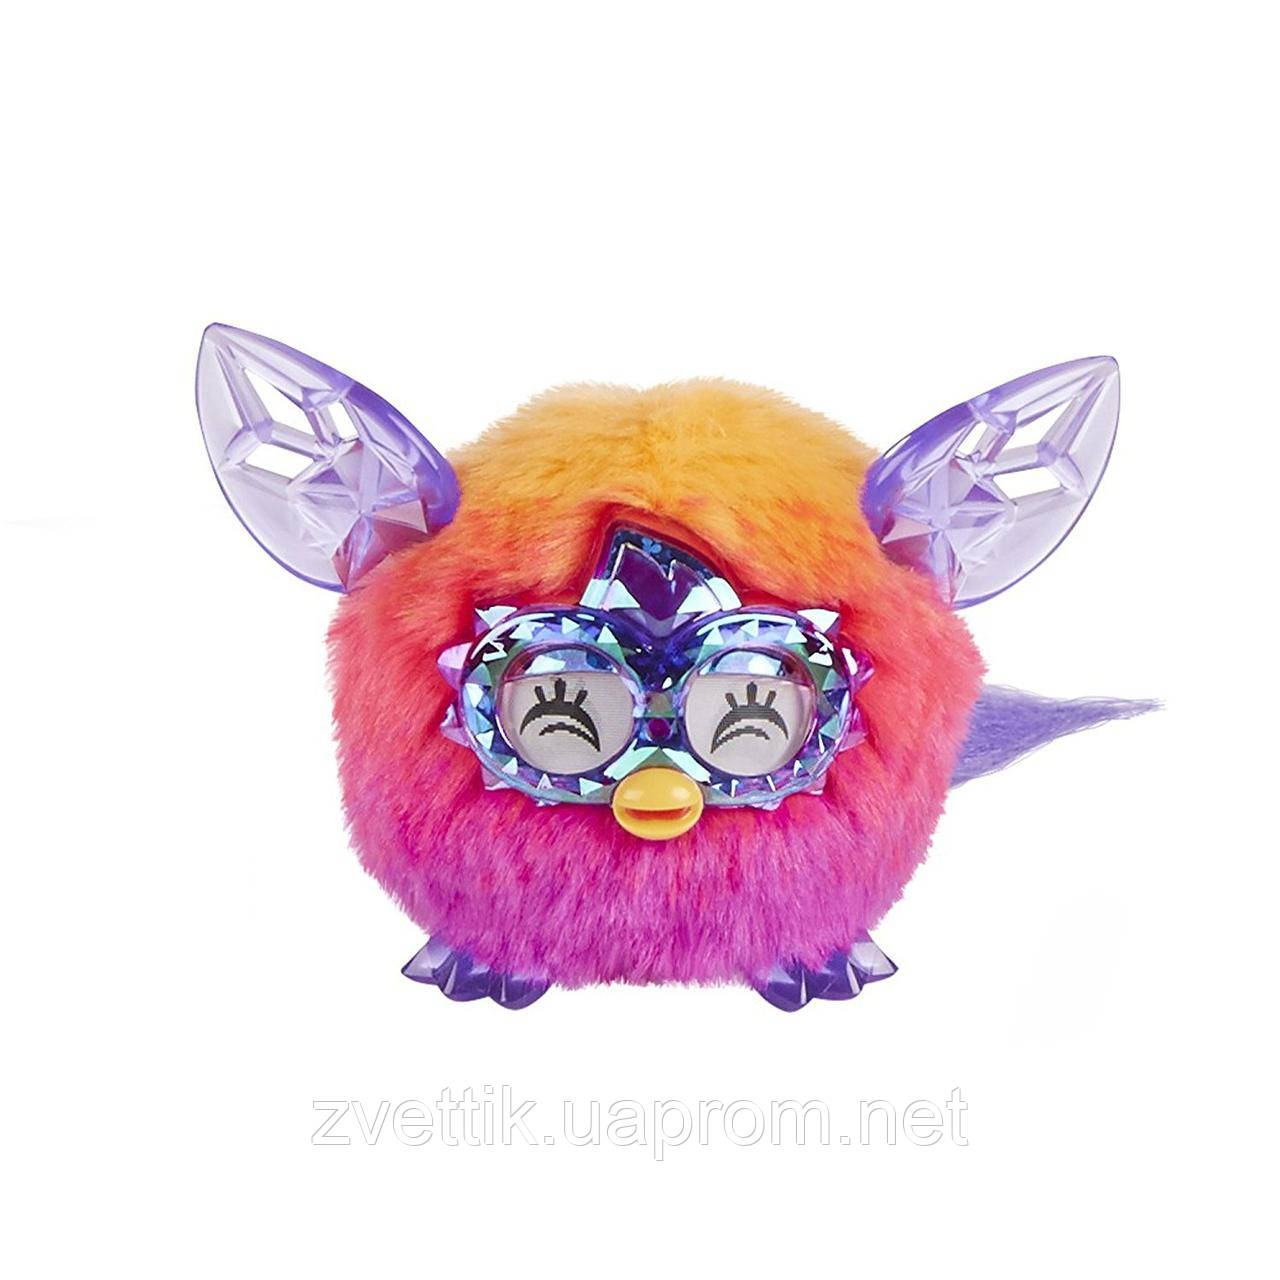 Интерактивный детеныш Furby Furblings Crystal Orange to Pink Фёрблинг Оранжево-Розовый Кристалл